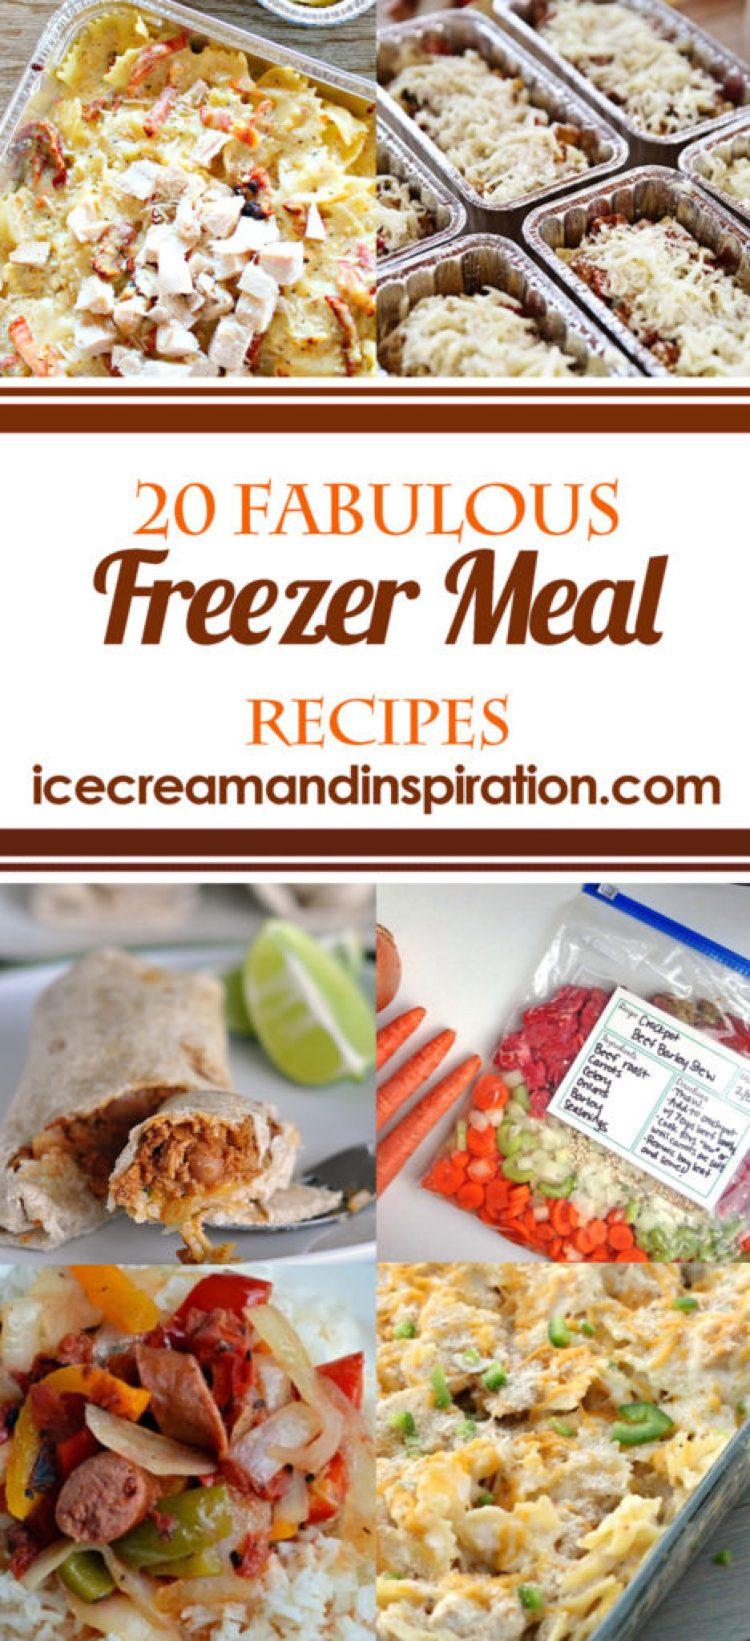 These 20 Fabulous Freezer Meals make back-to-school a breeze! Whip up a bunch of these to keep in your freezer for those super busy days when you don't have time to cook!